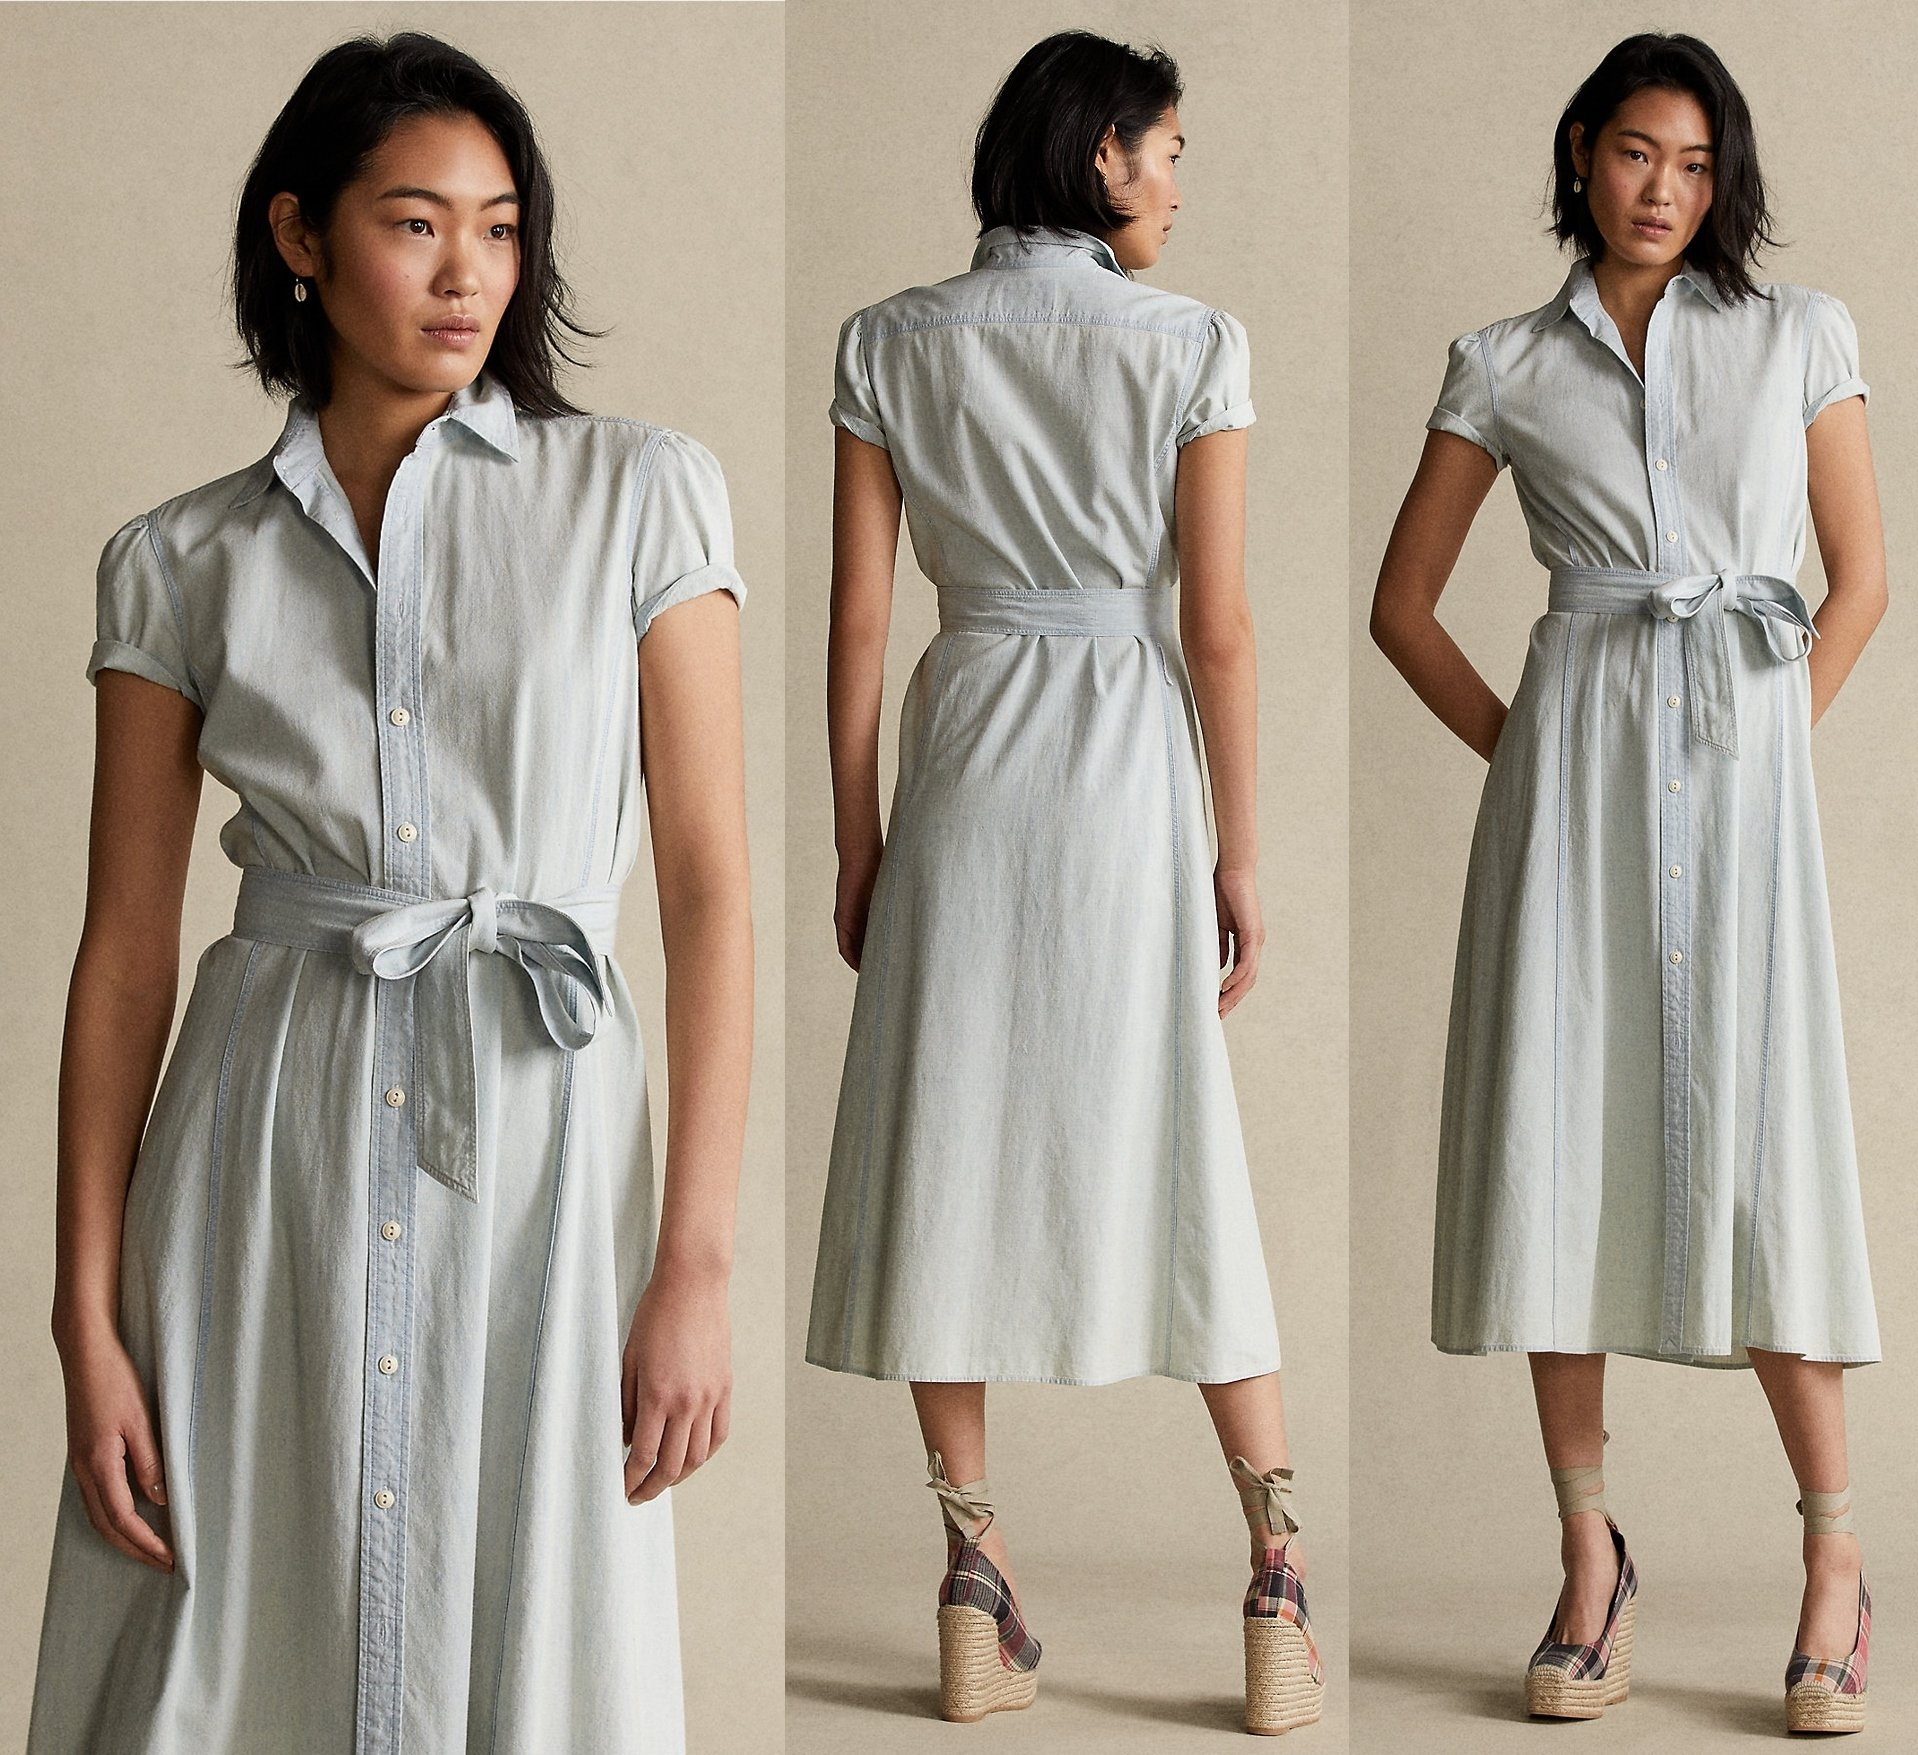 Presented in a casual chambray hue, this lightweight cotton shirtdress features a fluid A-line skirt and is accented with a self-belt at the waist